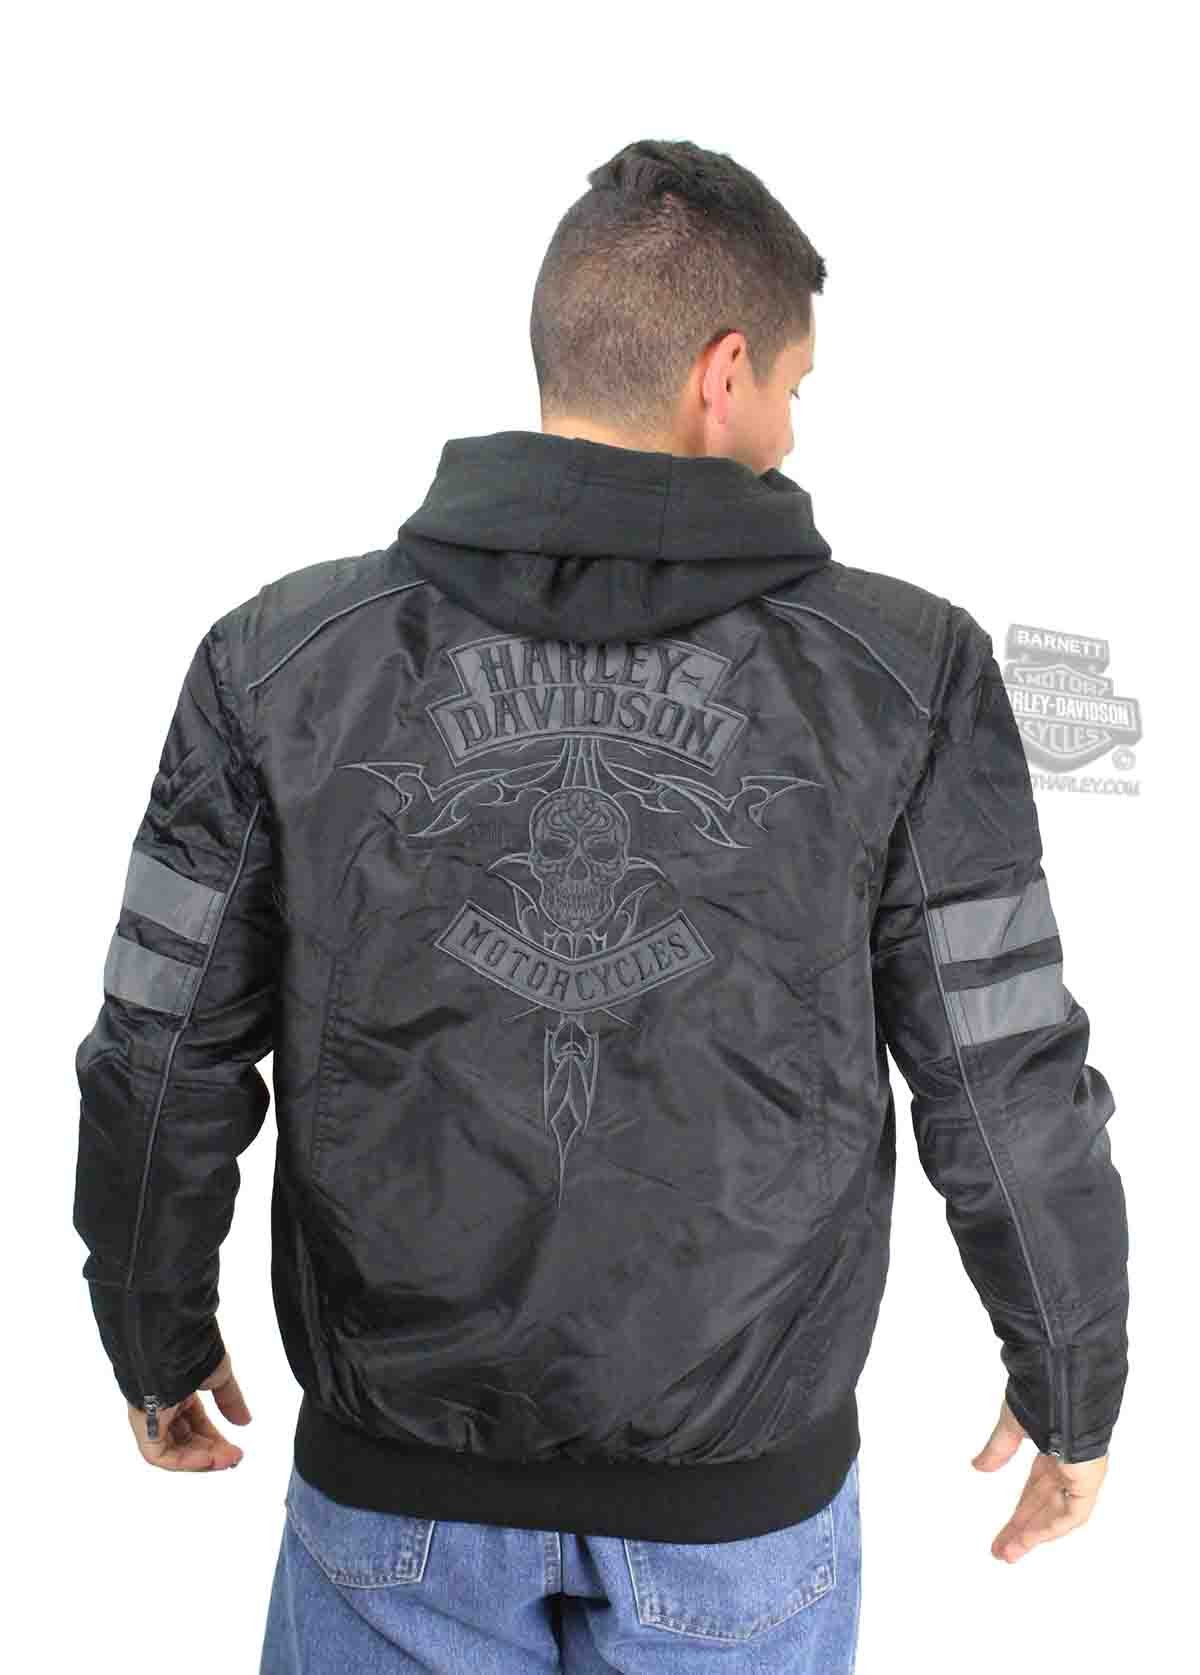 Barnett Harley-Davidson Harley-Davidson Mens Bomber Tribal Skull With 3M Thinsulate Insulation Black Casual Jacket (X-Large)